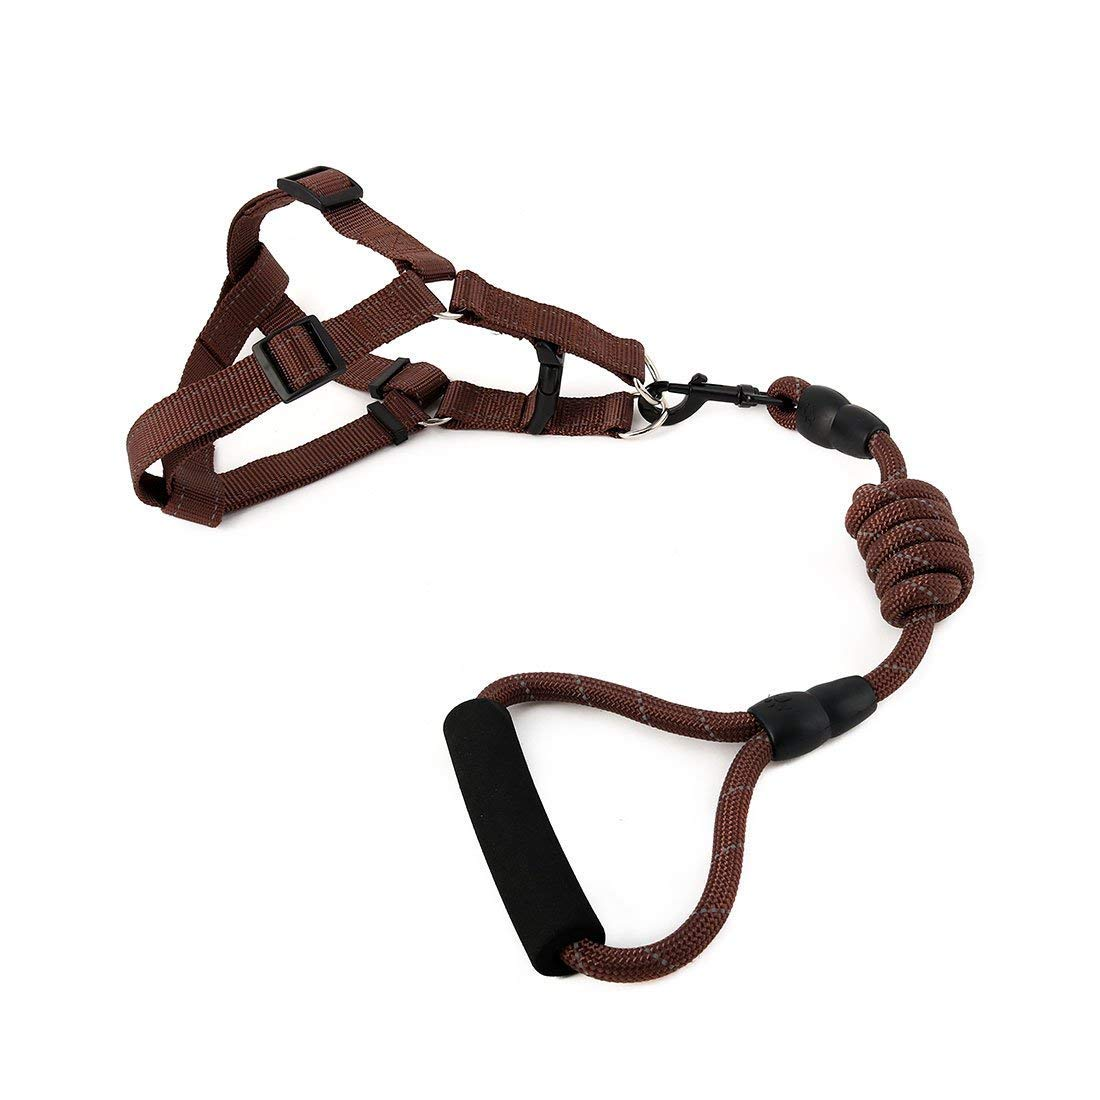 1Pc XL, Coffee color   Nylon Travel Walking Adjustable Reflective Leash Rope Dog Pet Neck Belt Harness